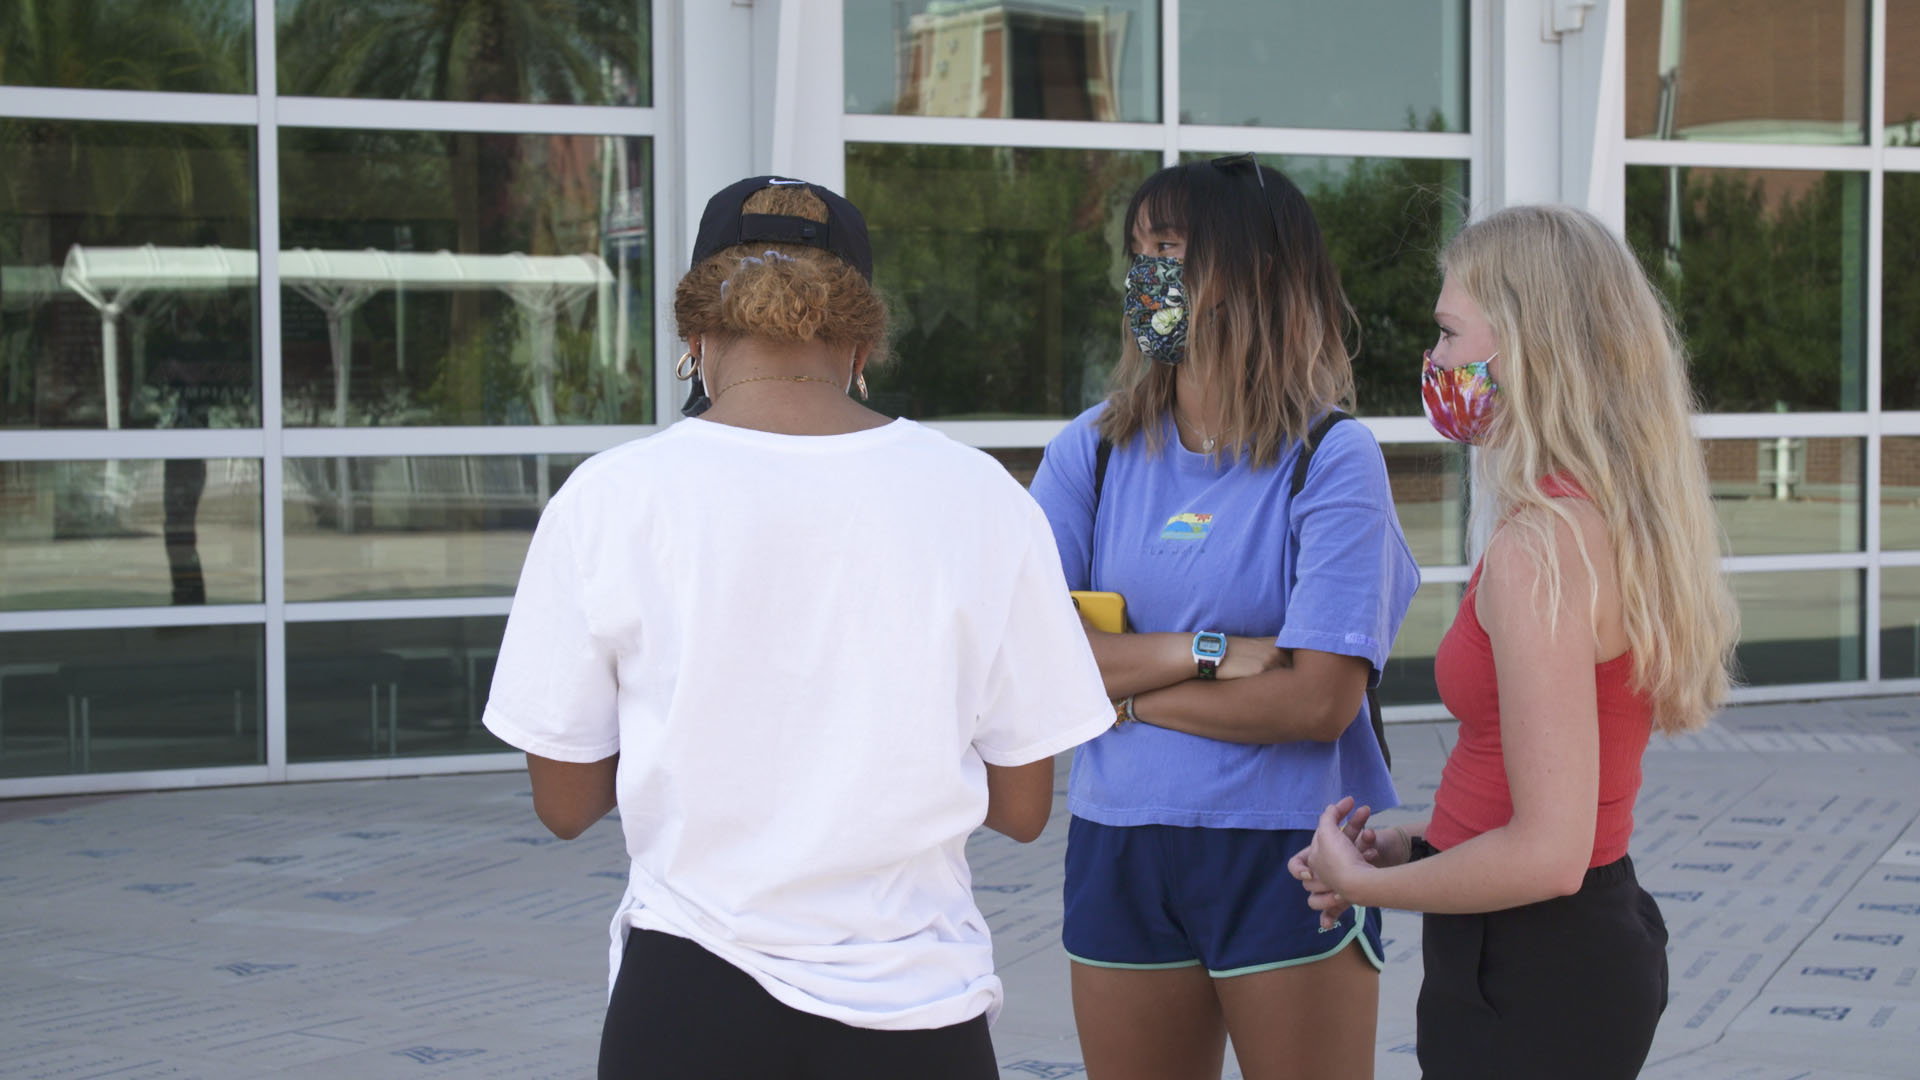 University of Arizona students wearing masks on campus.